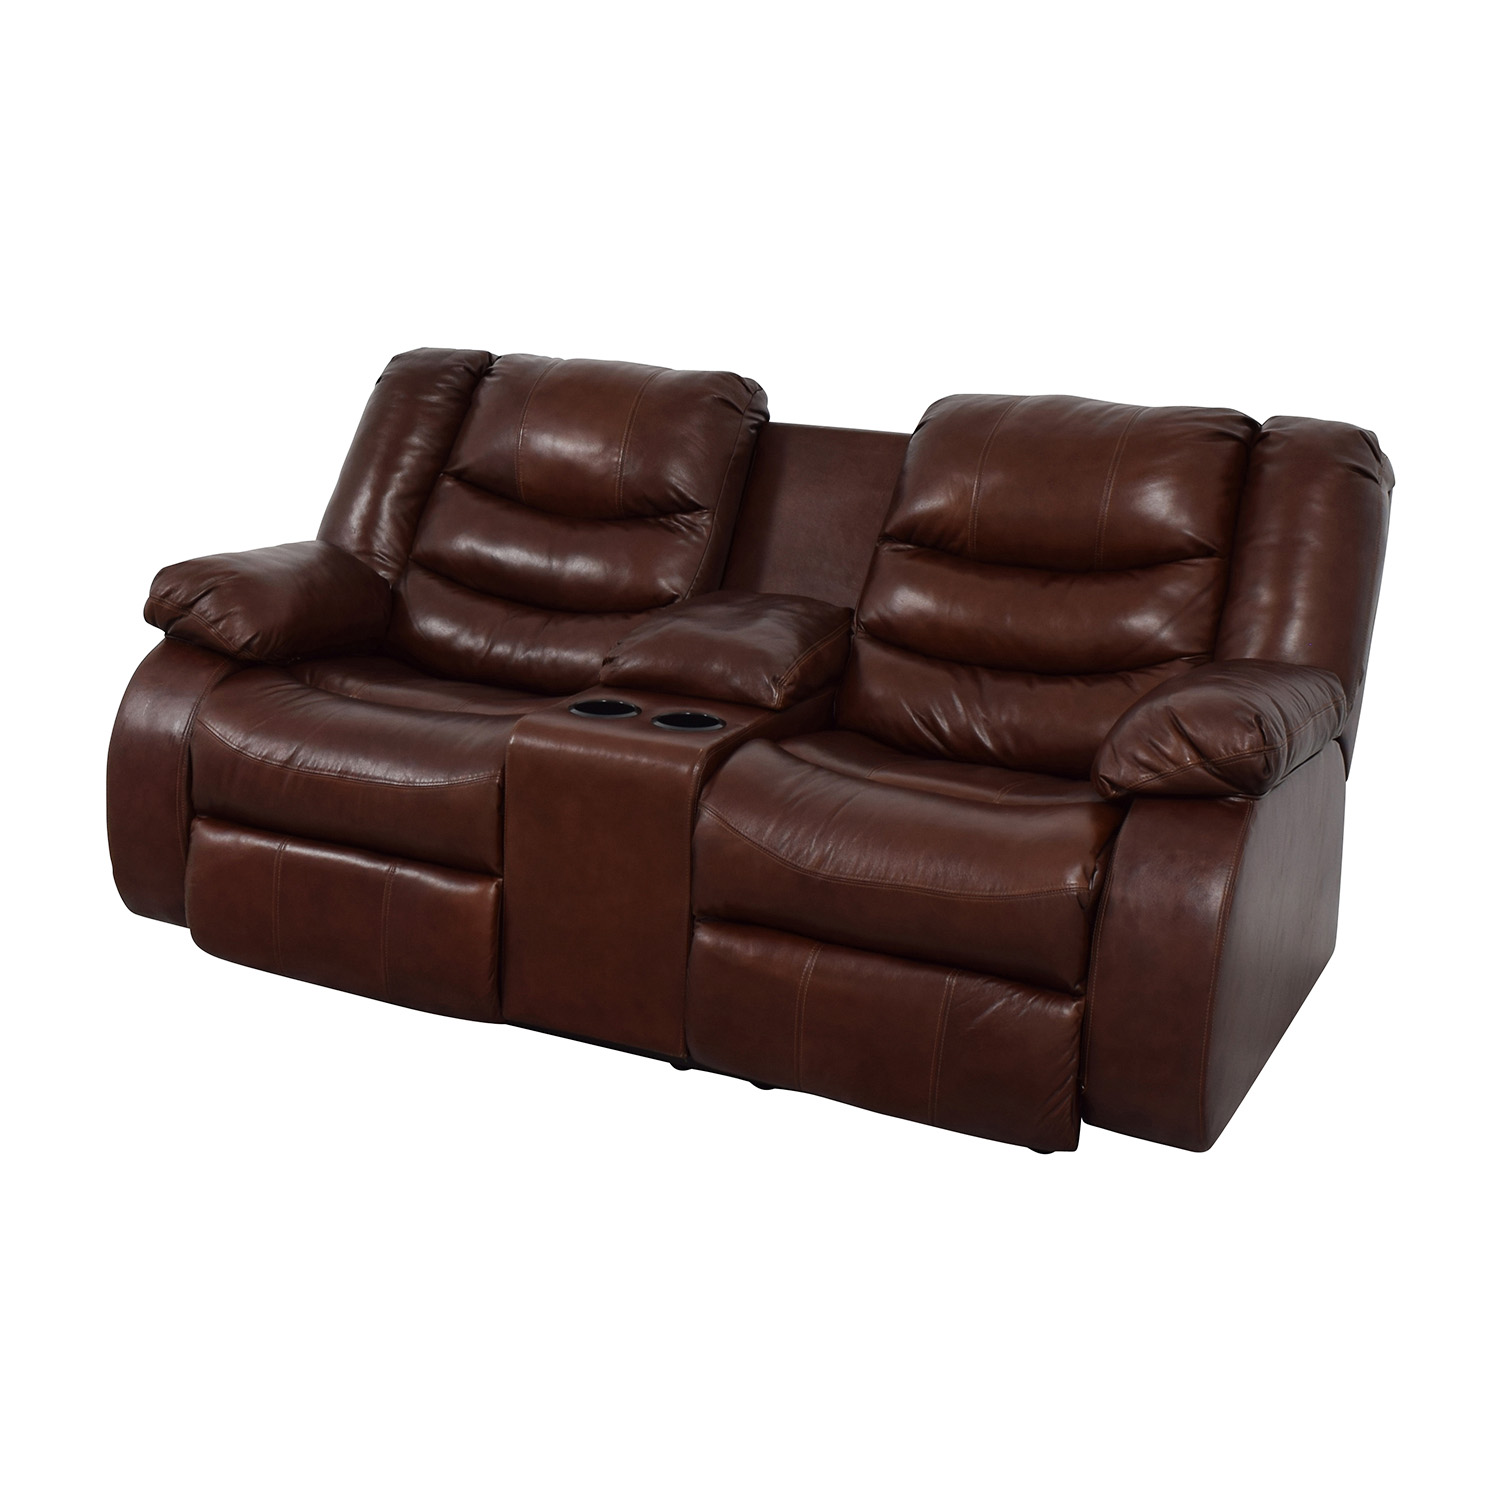 ashley furniture leather sofa recliners bed john lewis gumtree 90 off brown